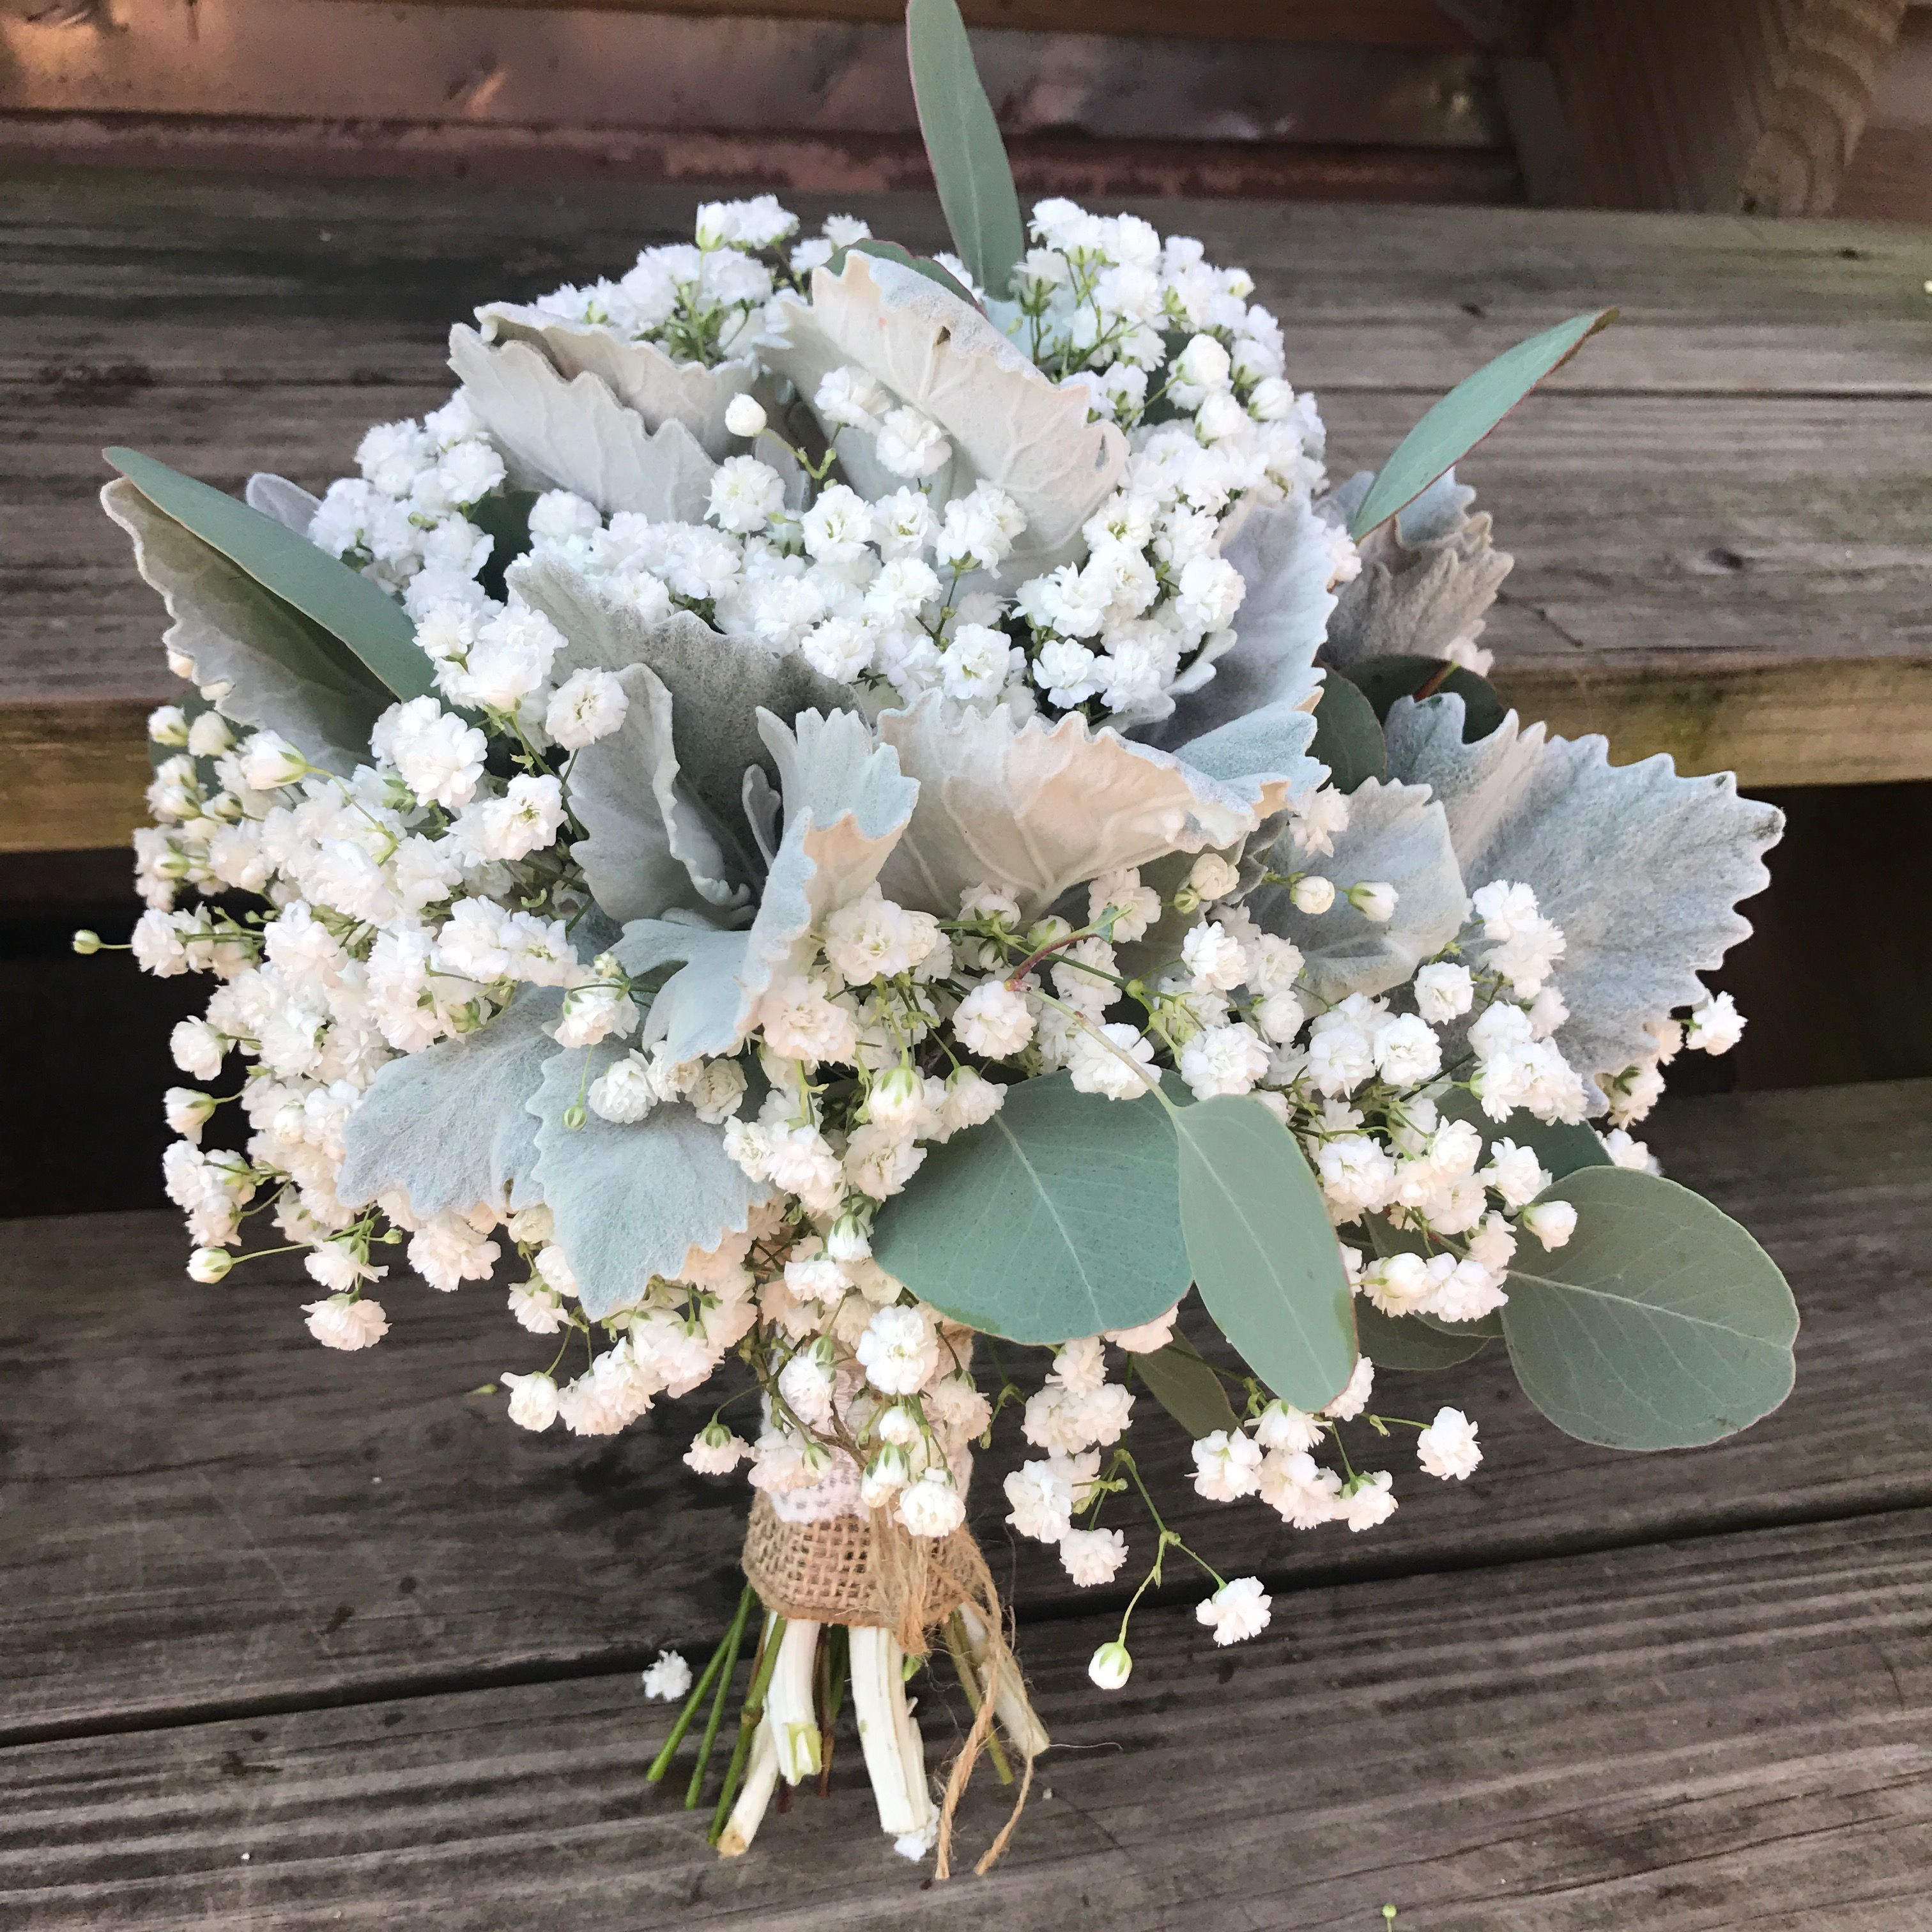 Hand Tied Bouquet Of Baby S Breath Dusty Miller And Eucalyptus With A Burlap And Wedding Centerpieces Mason Jars Bridesmaid Bouquet White Babys Breath Bouquet